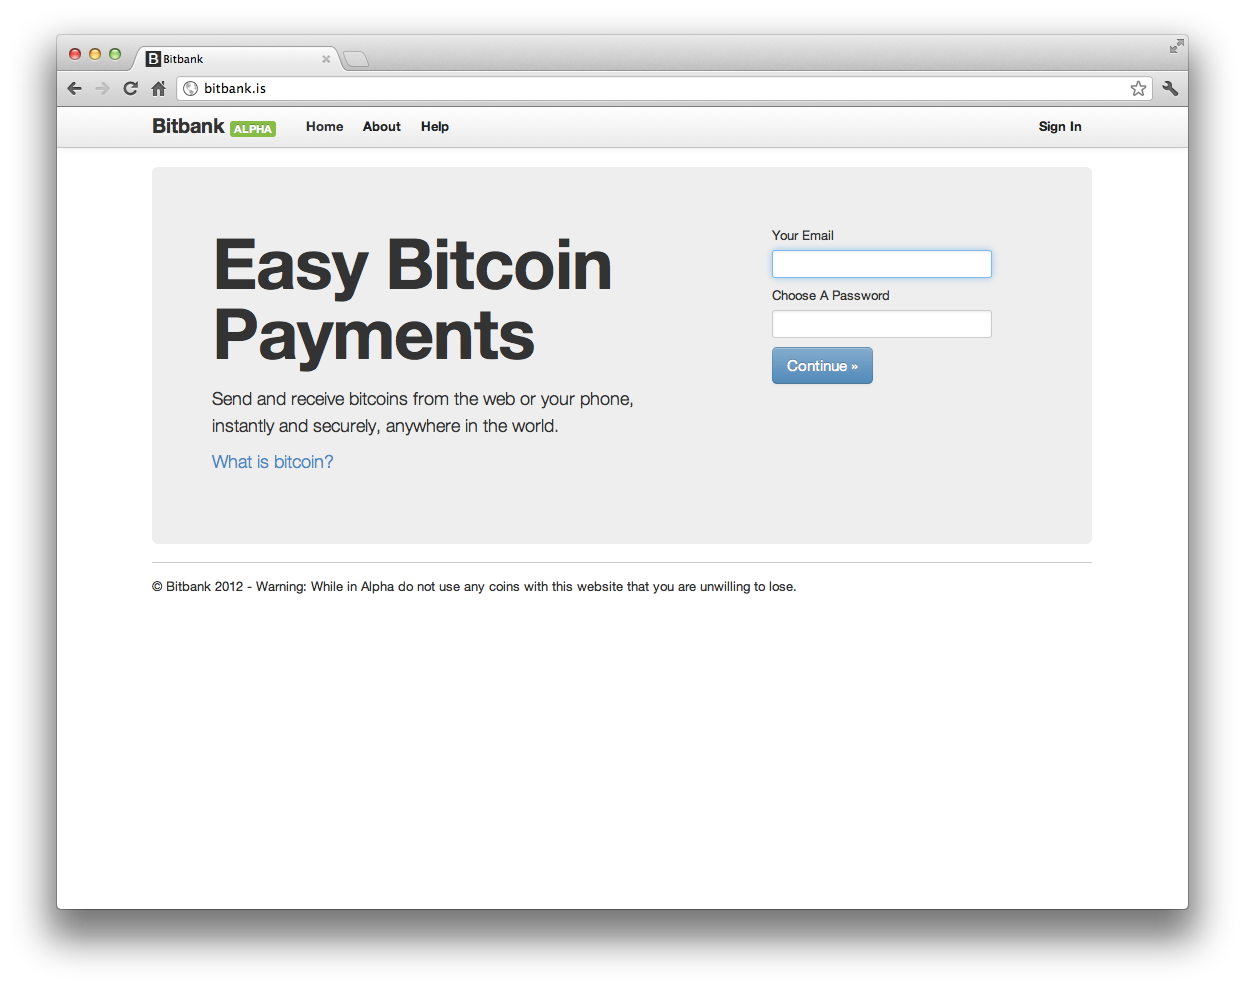 The early version of BitBank